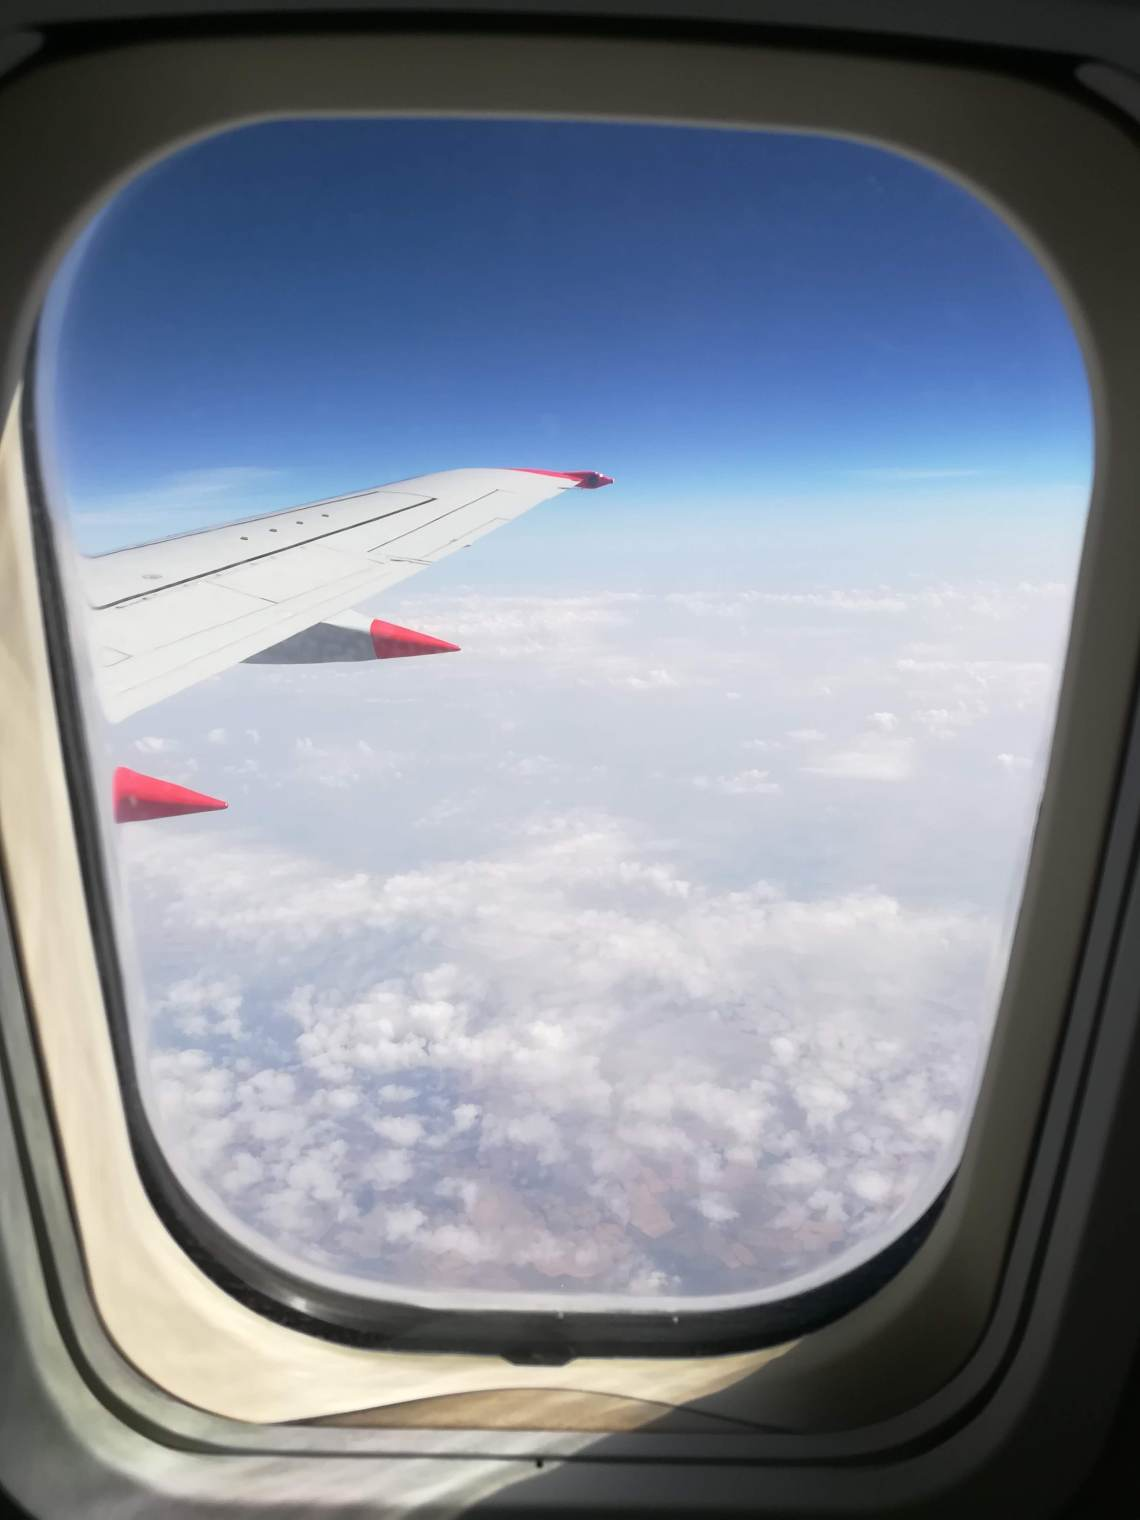 A photo taken through the window of an airplane on a stress-free journey